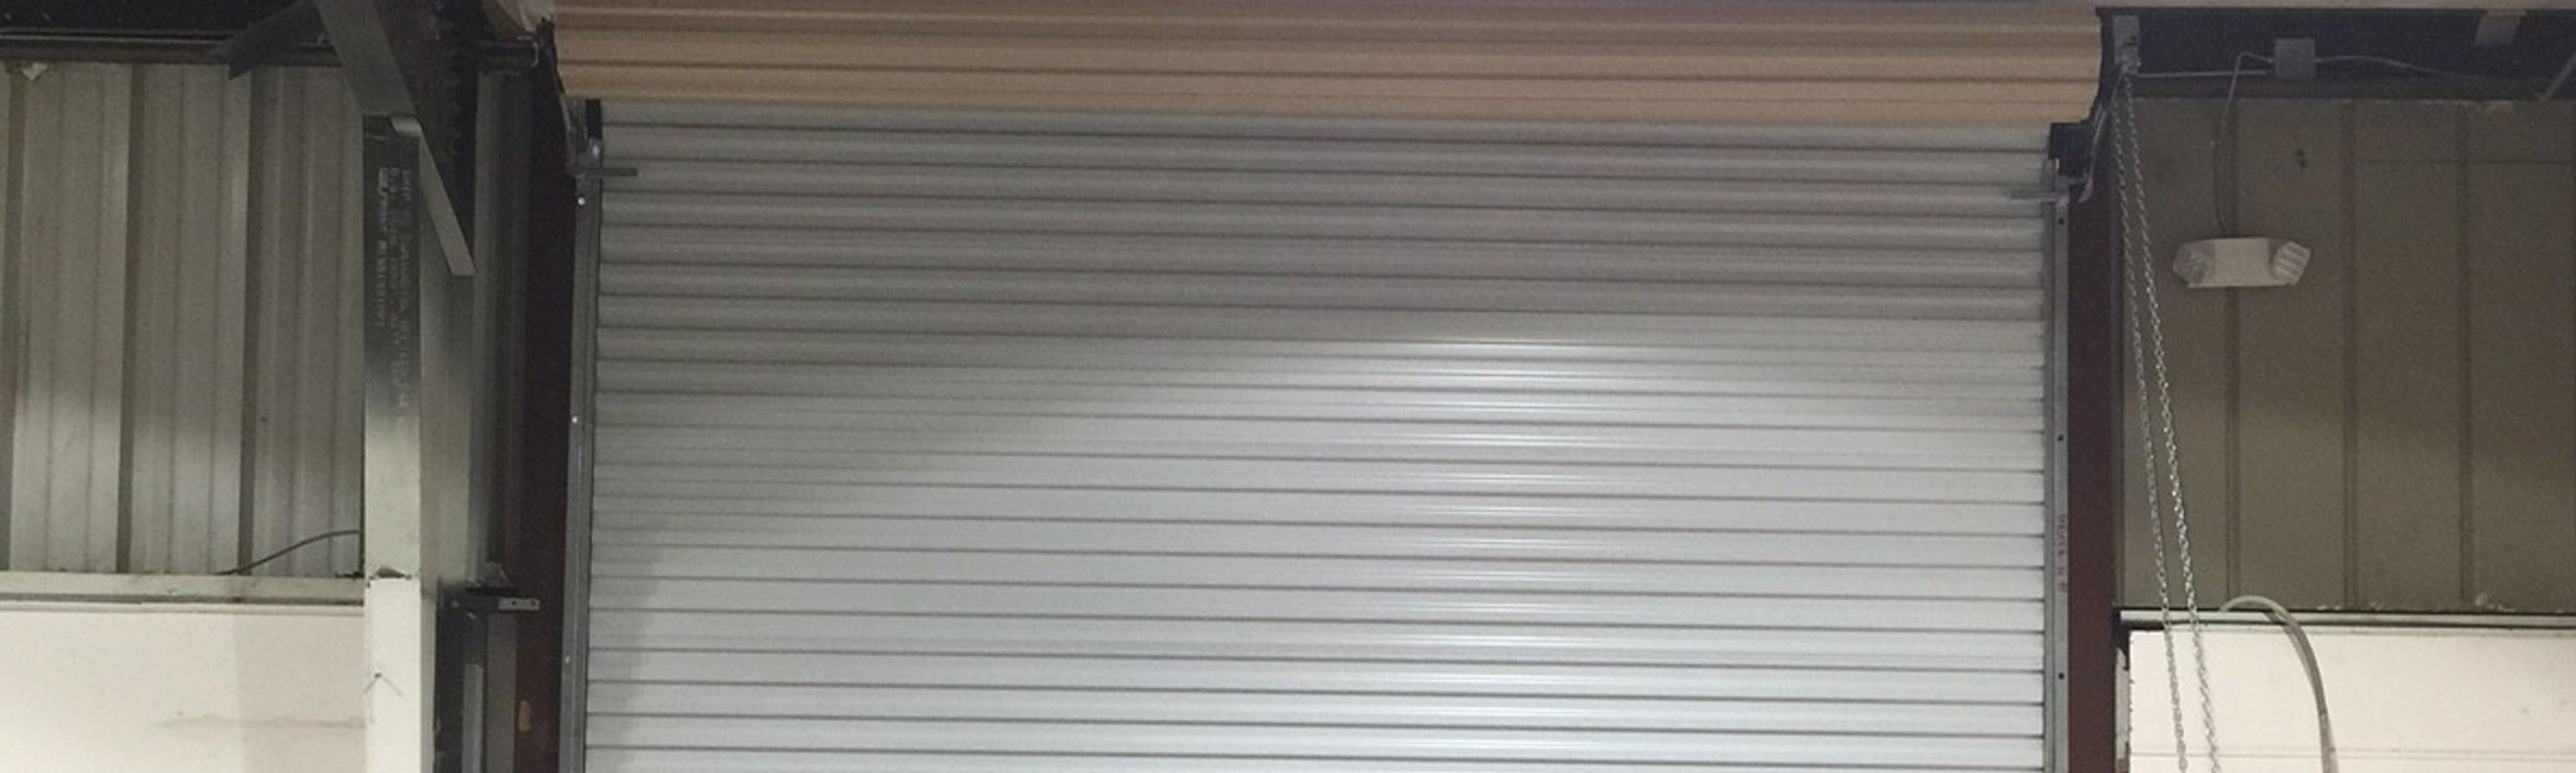 rollerdor buy online door garage uk rolling doors